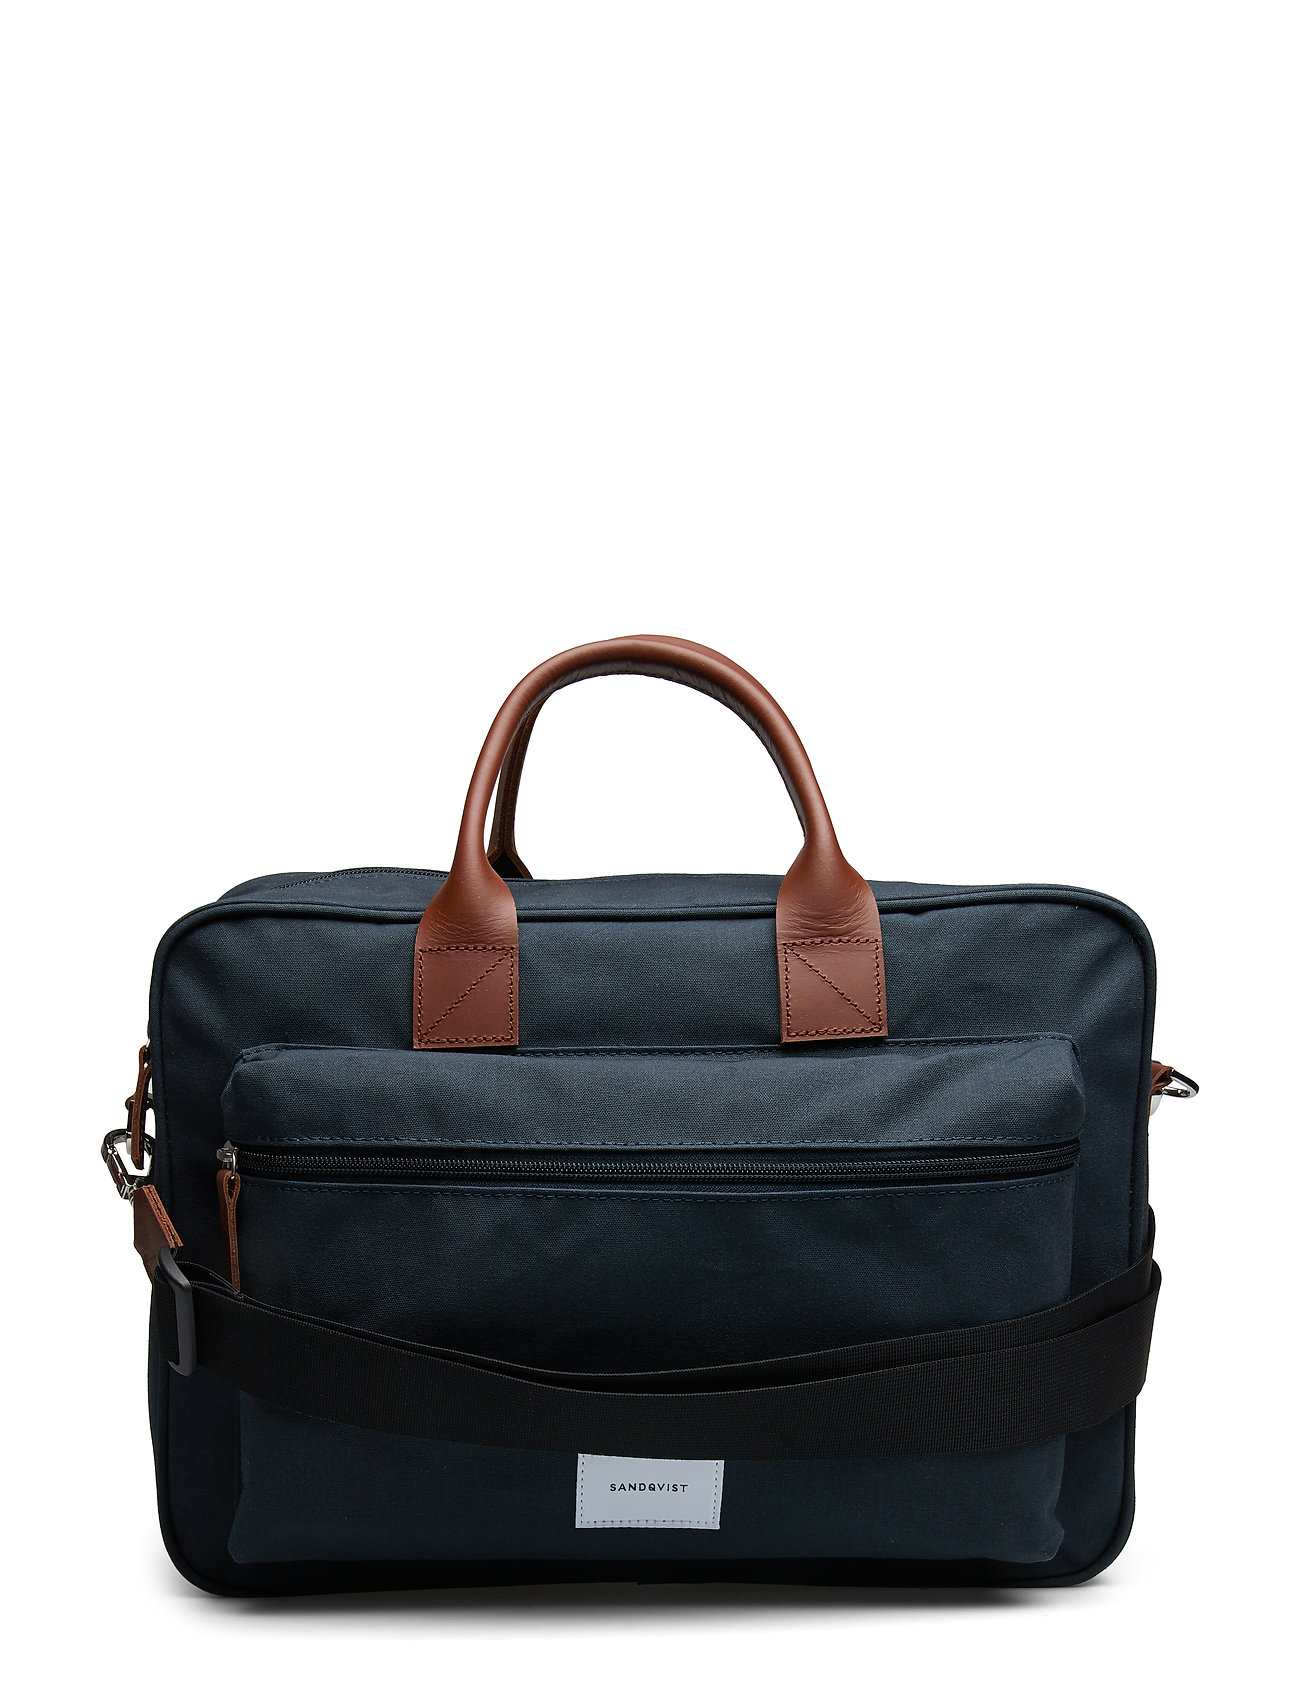 SANDQVIST EMIL - NAVY WITH COGNAC BROWN LEATHER